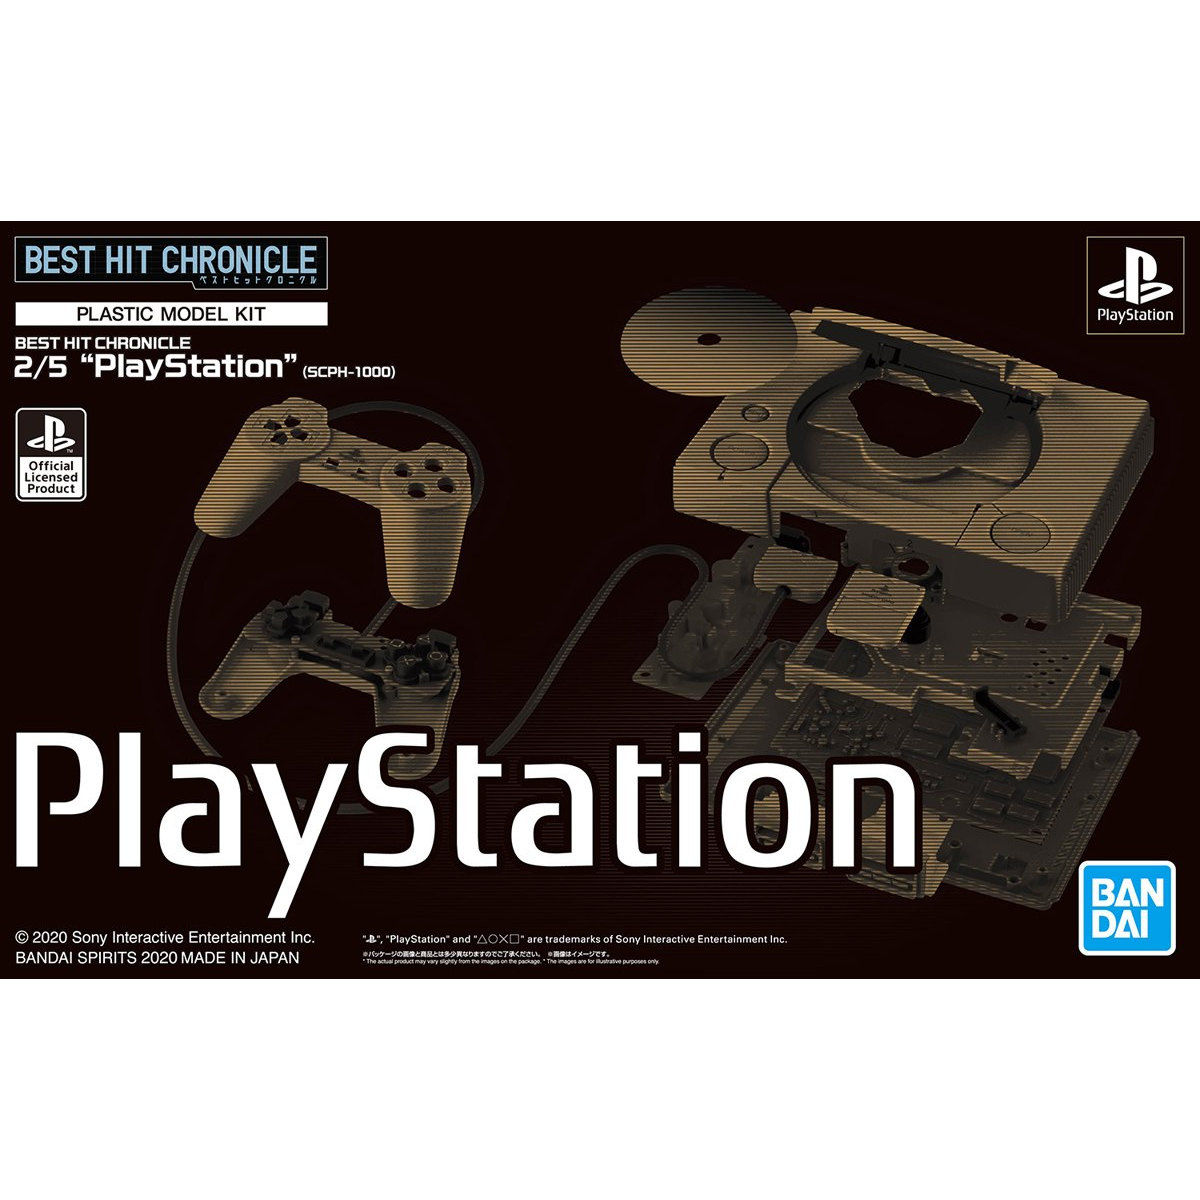 "BEST HIT CHRONICLE 2/5 ""PlayStation""(SCPH-1000) 08"